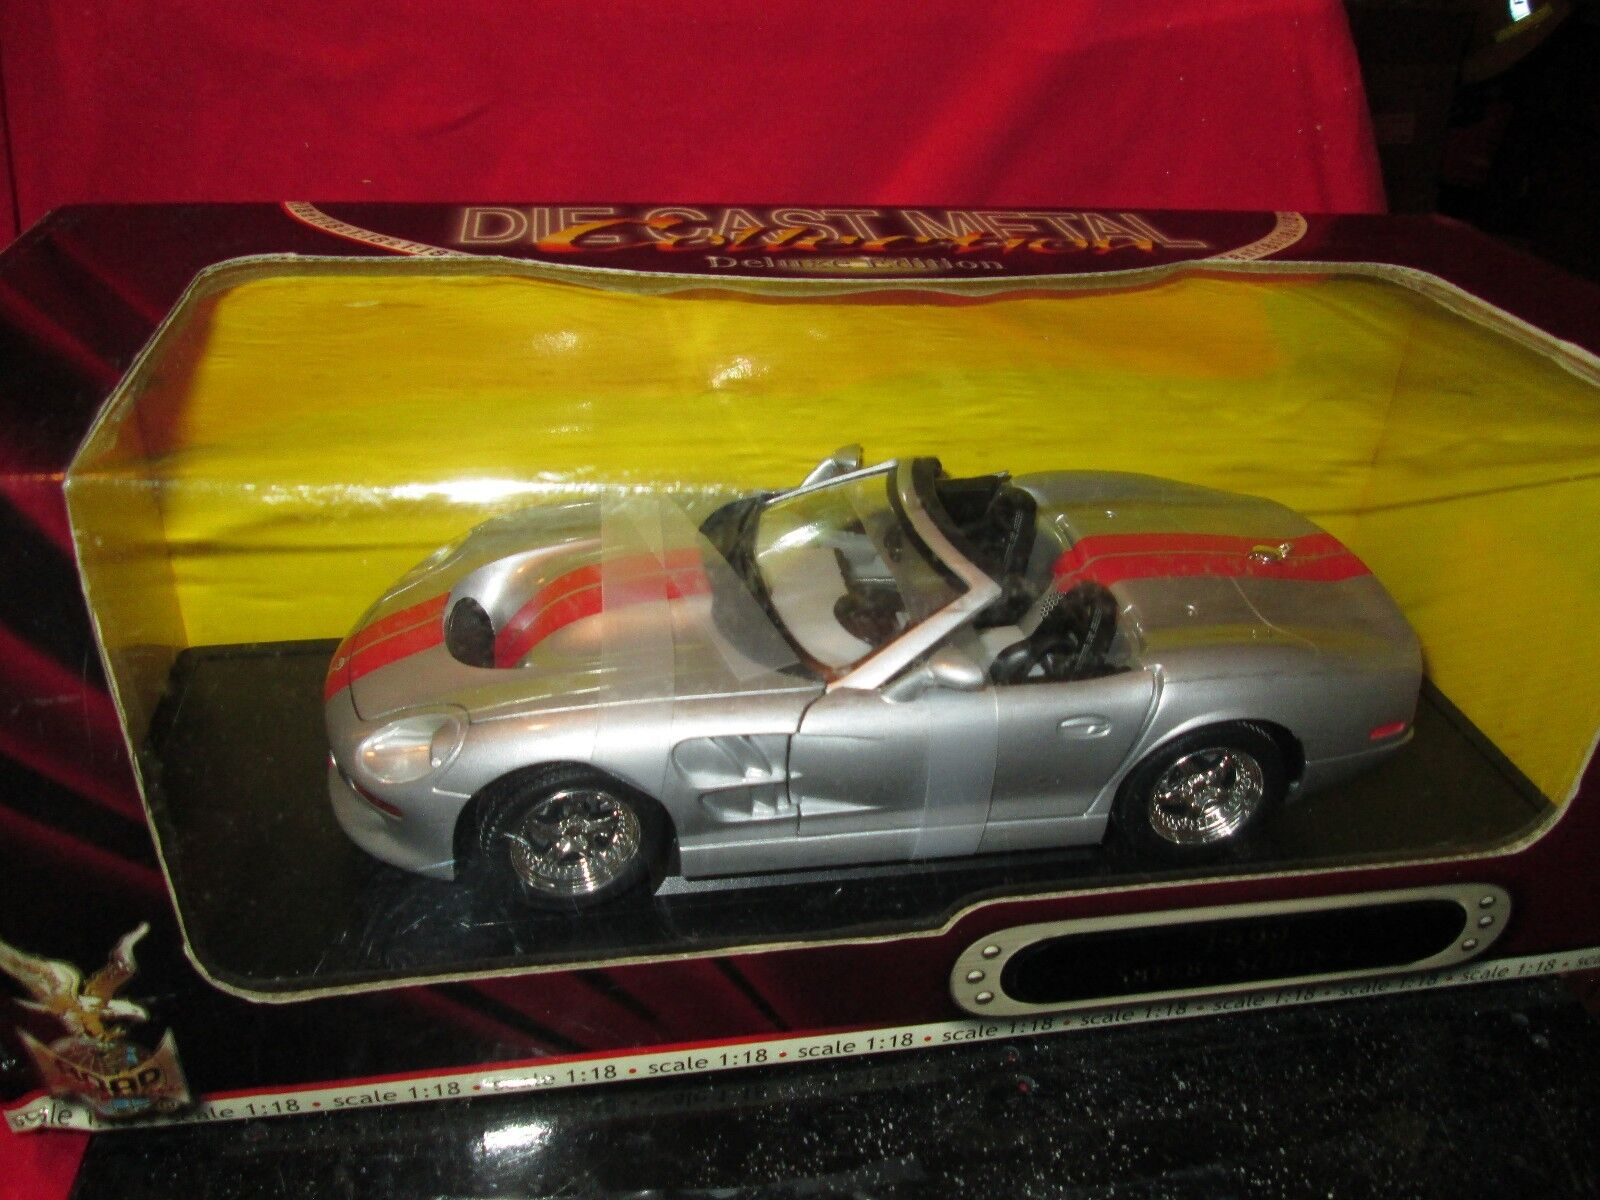 1999  Shelby series I 1 18 Scale Die-Cast Metal by Road Signature BOX IS ROUGH